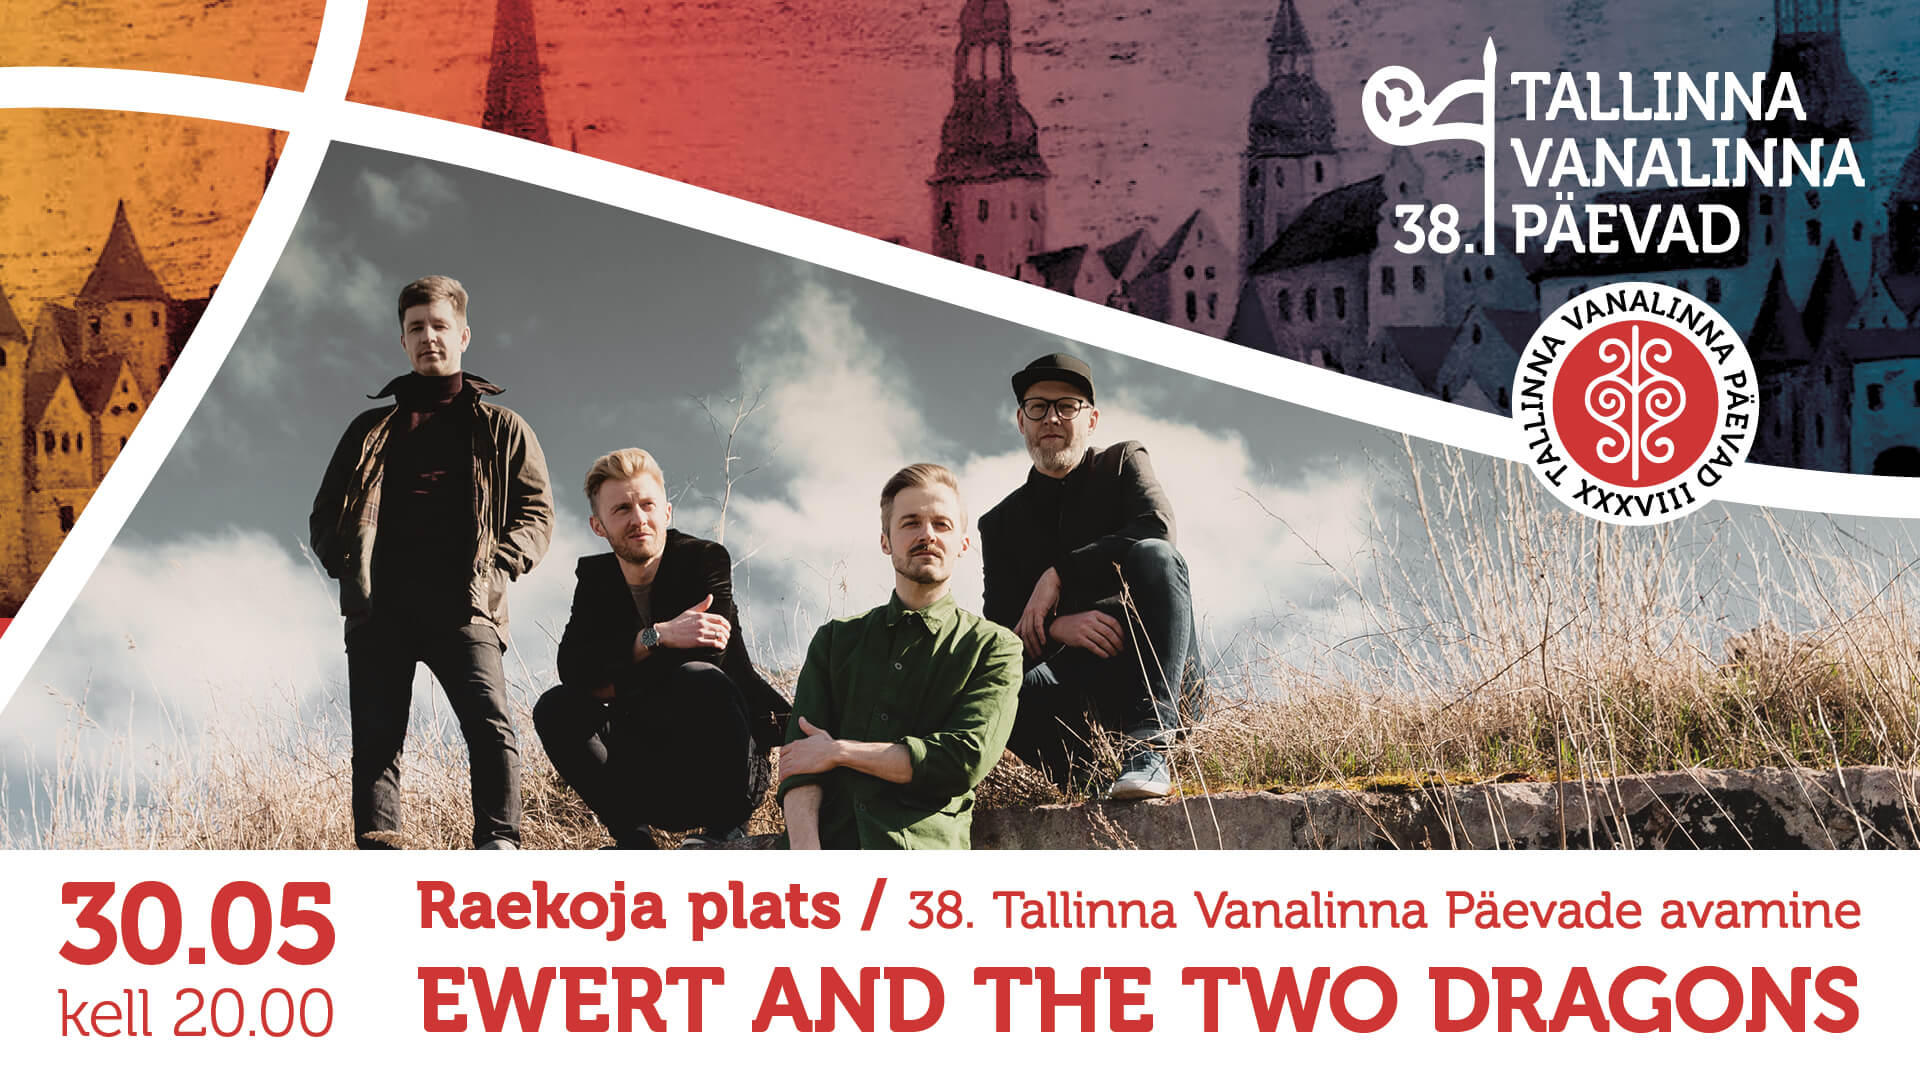 30.05.19, kell 20:00 – Ewert and The Two Dragons, Raekoja plats.